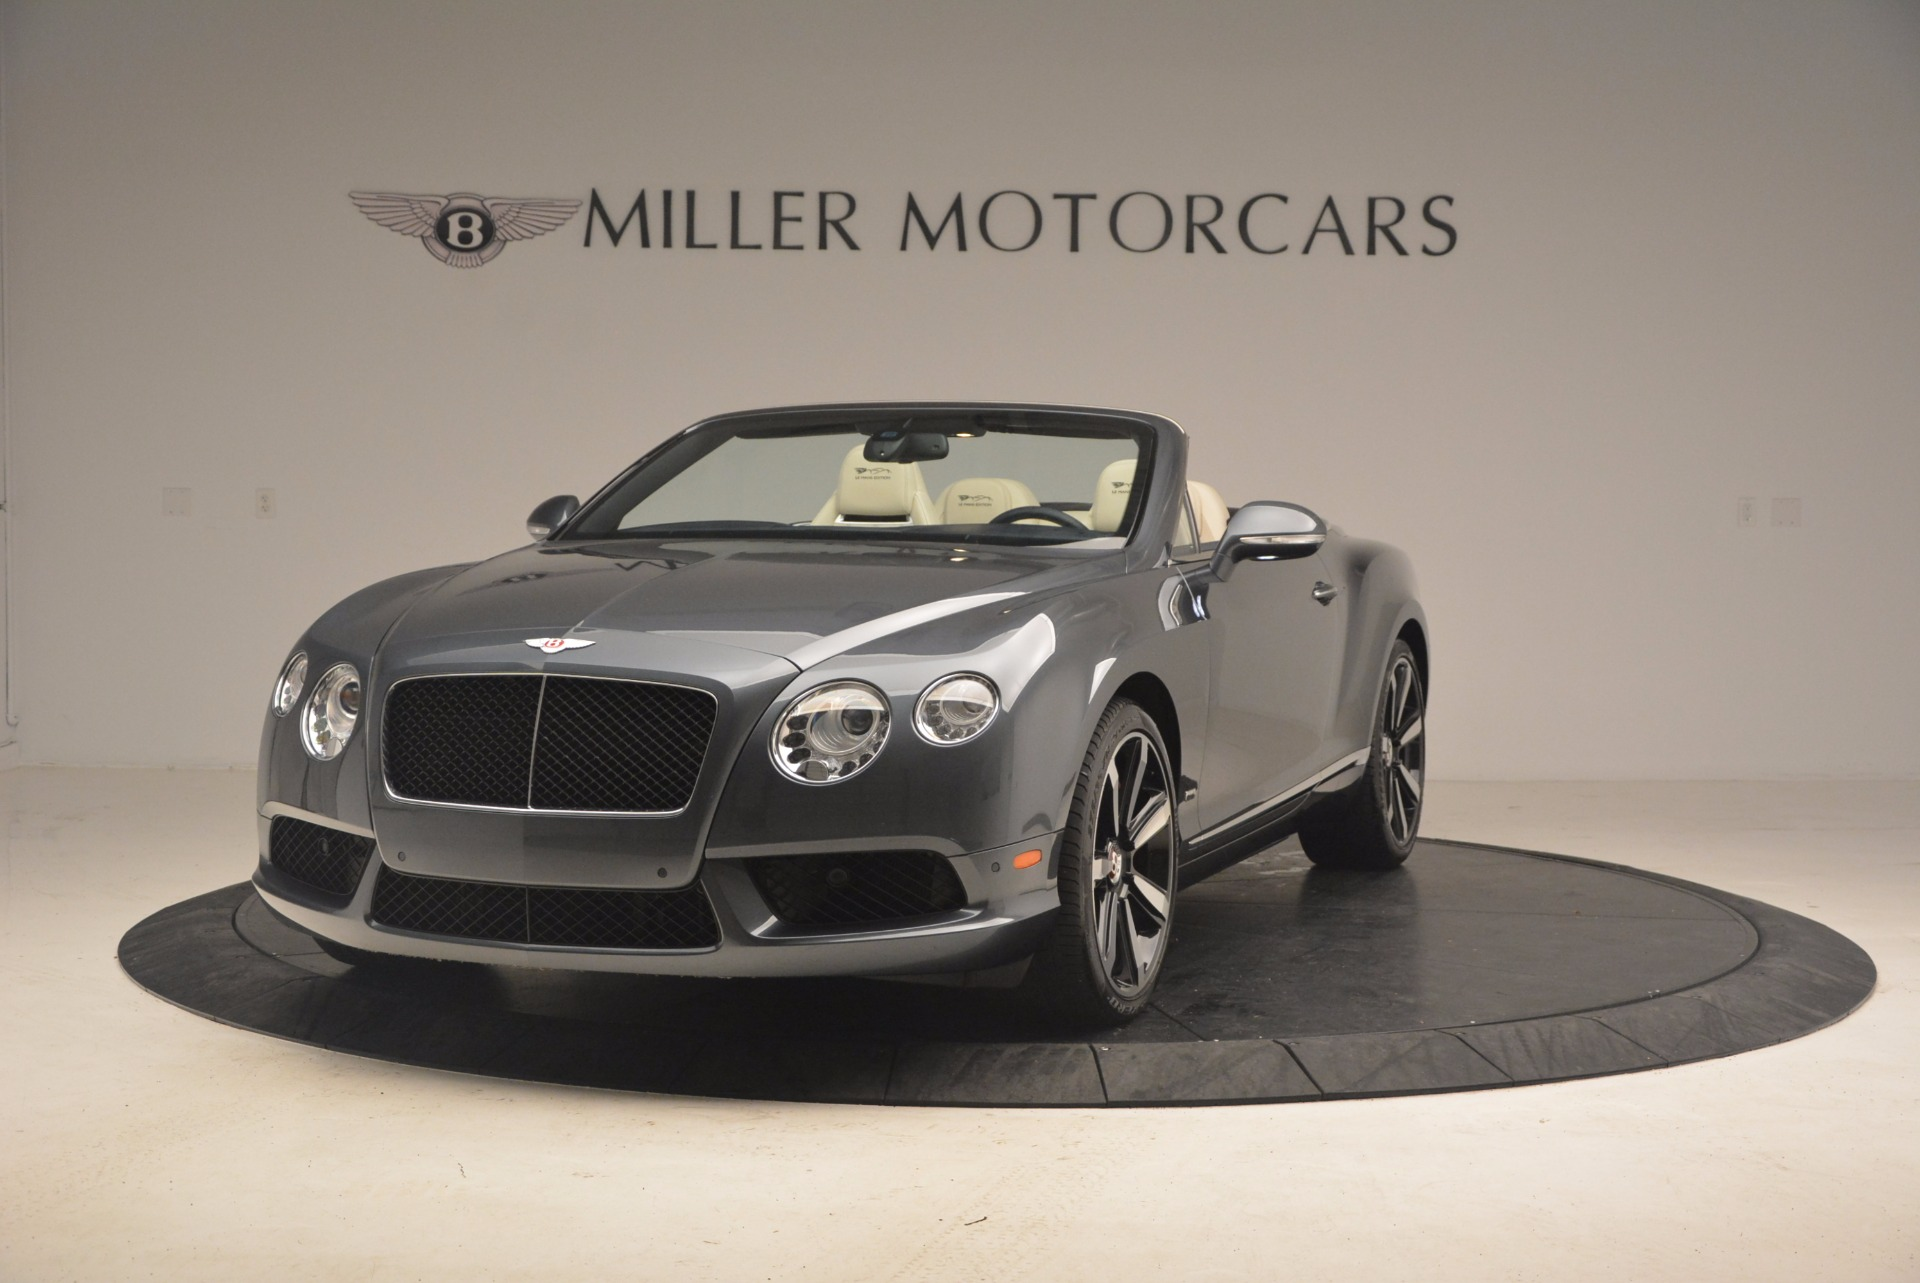 Used 2013 Bentley Continental GT V8 Le Mans Edition, 1 of 48 For Sale In Westport, CT